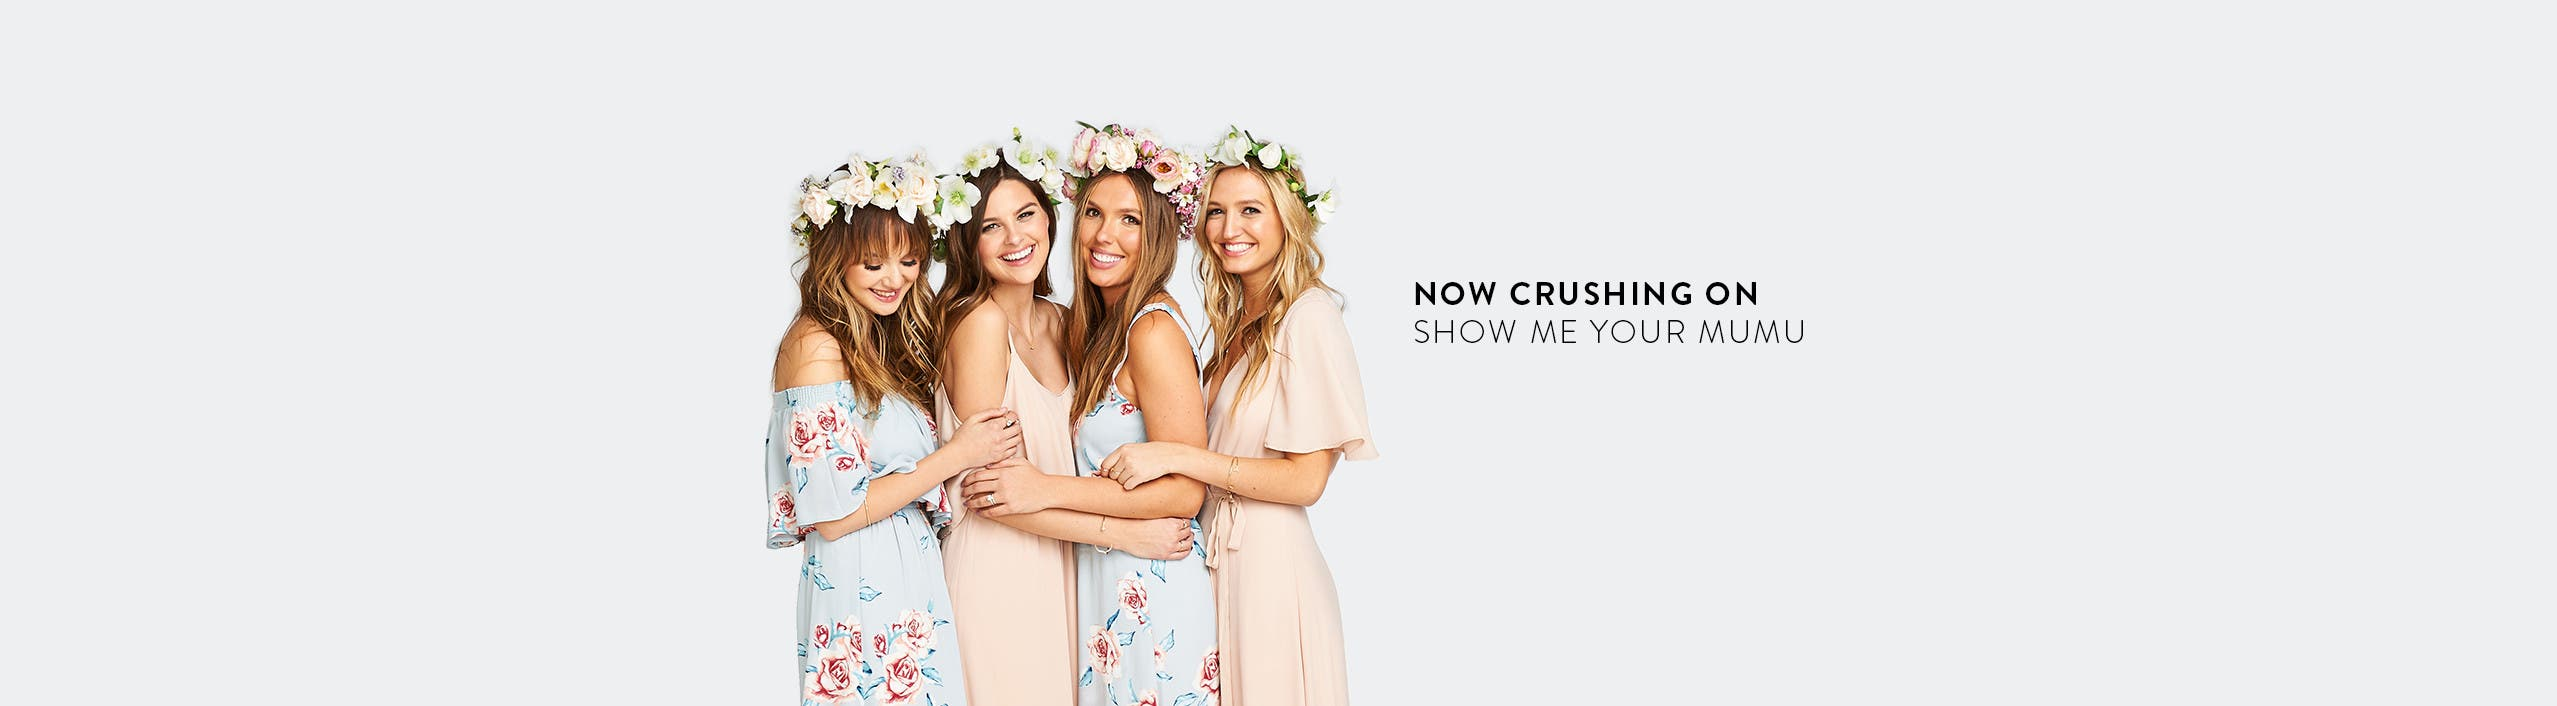 Now crushing on Show Me Your Mumu bridesmaid dresses.